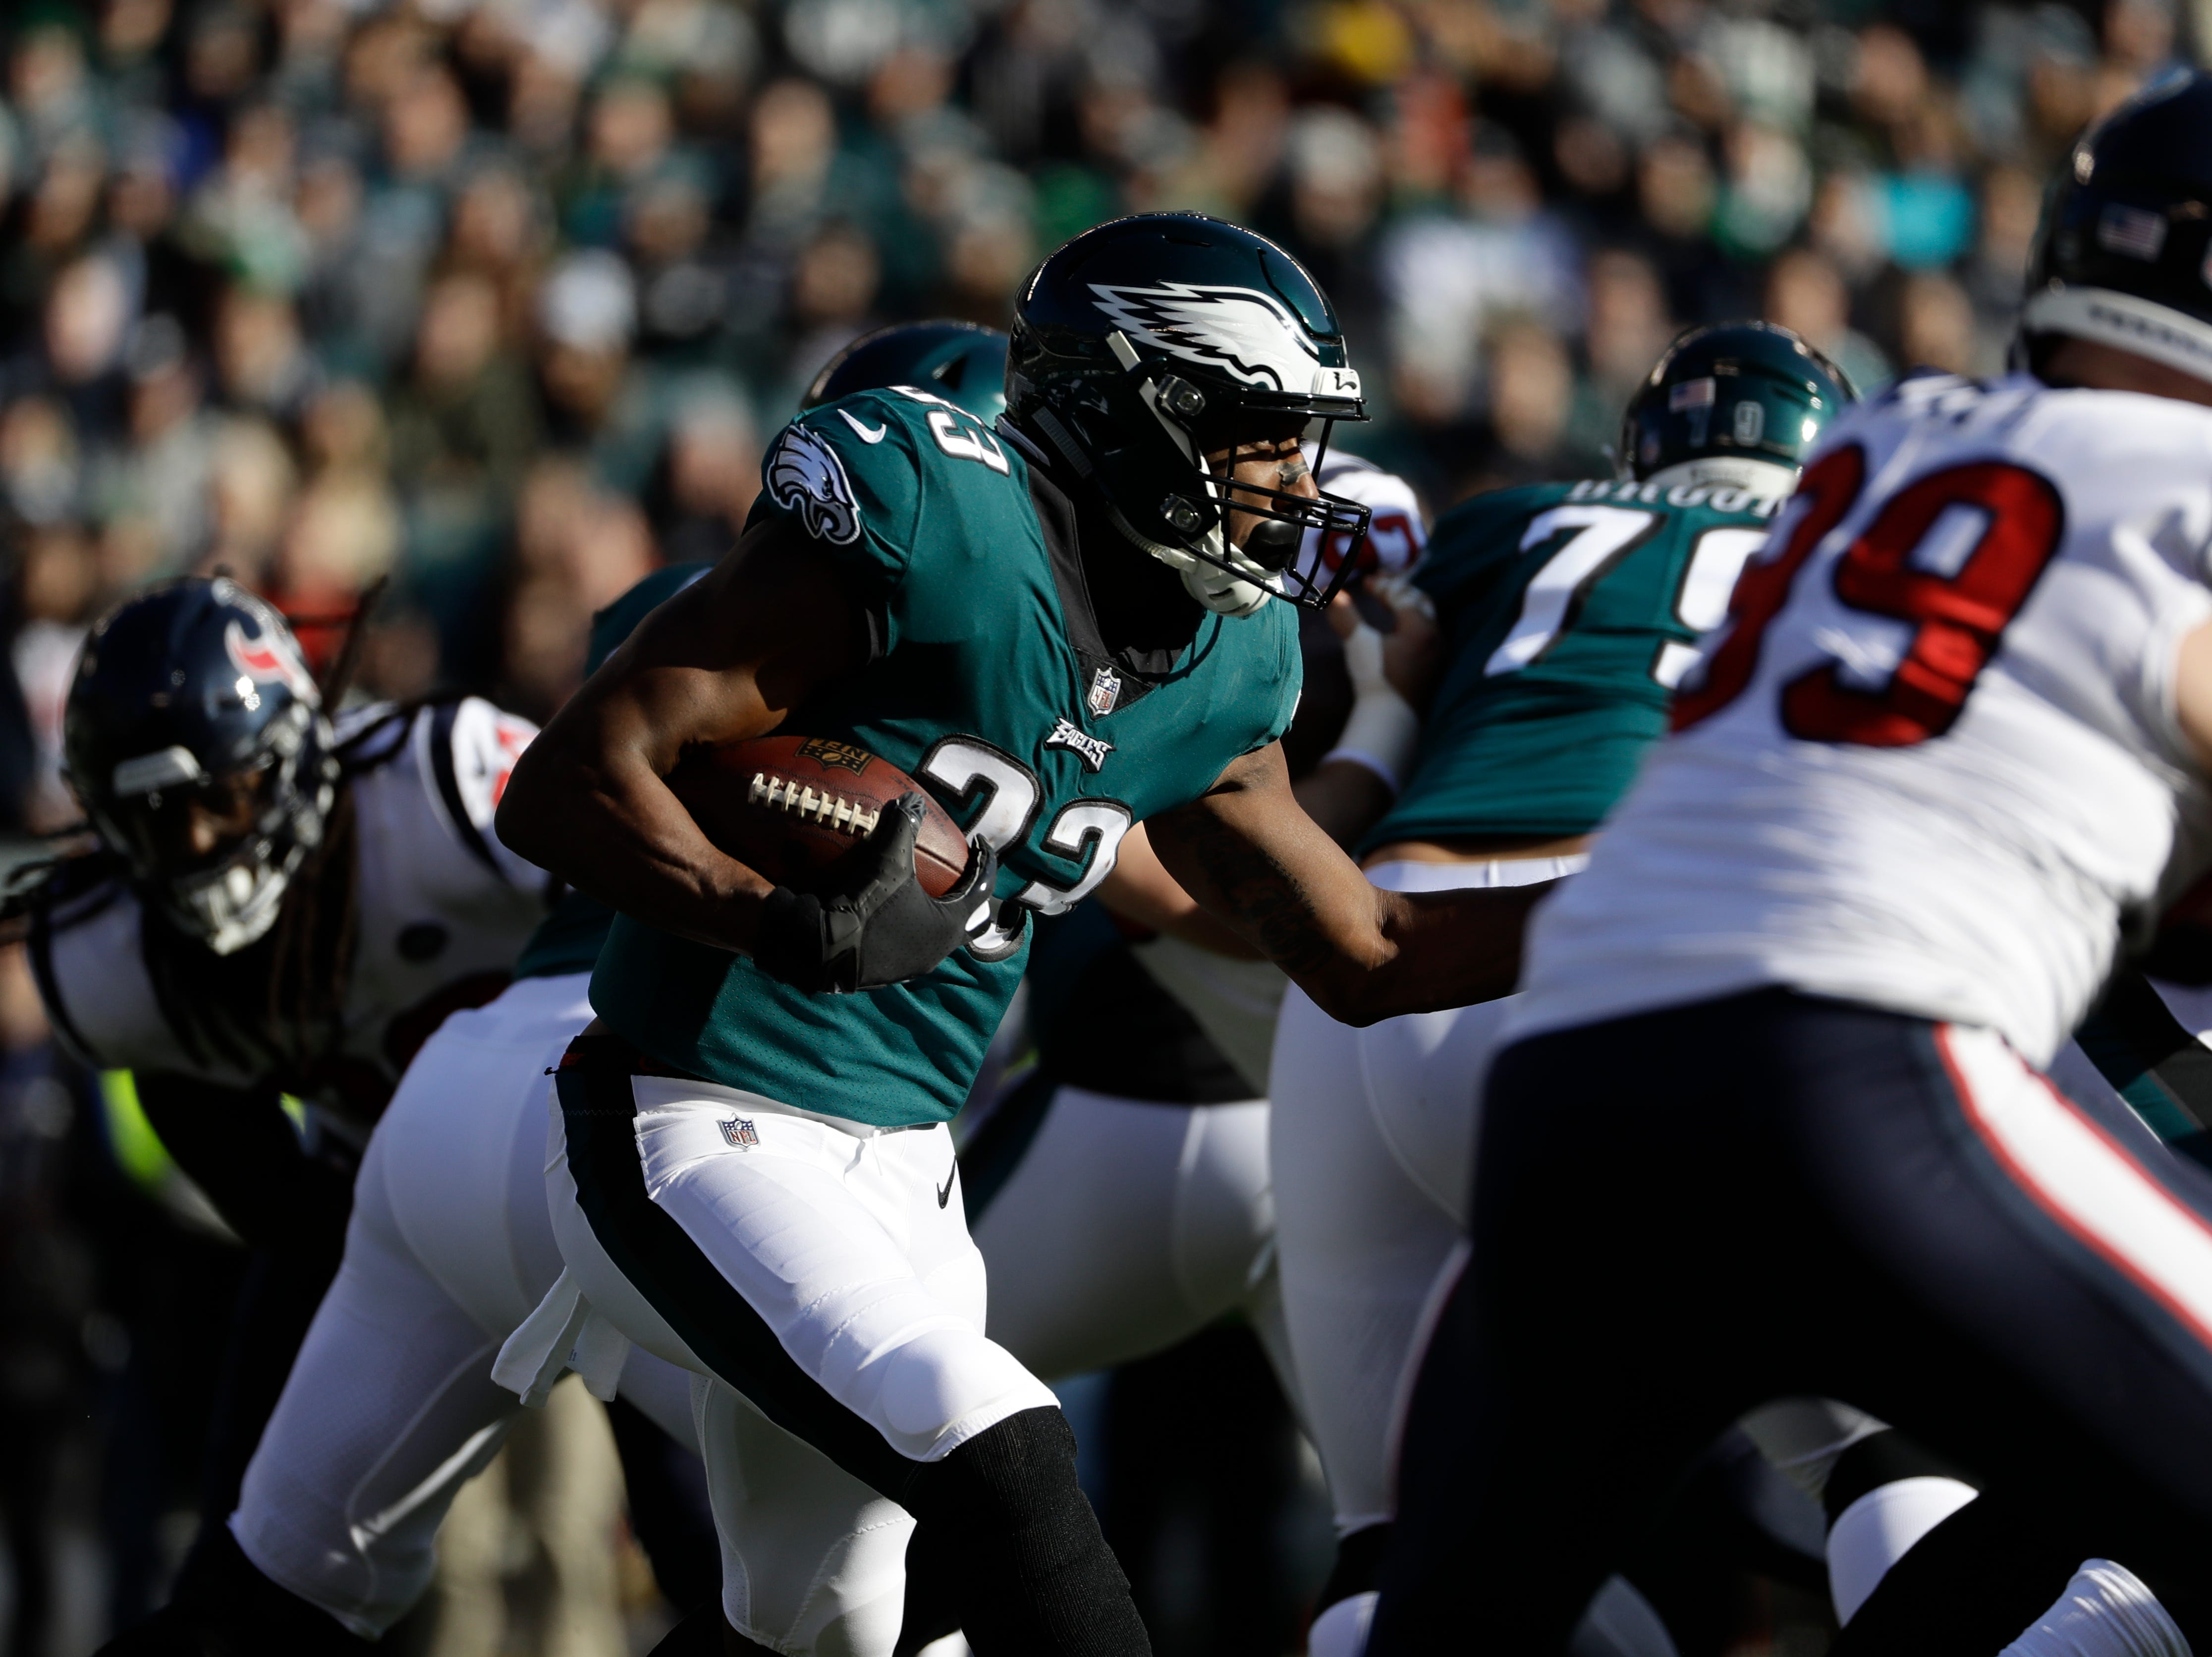 Philadelphia Eagles' Josh Adams rushes during the first half of an NFL football game against the Houston Texans, Sunday, Dec. 23, 2018, in Philadelphia. (AP Photo/Michael Perez)